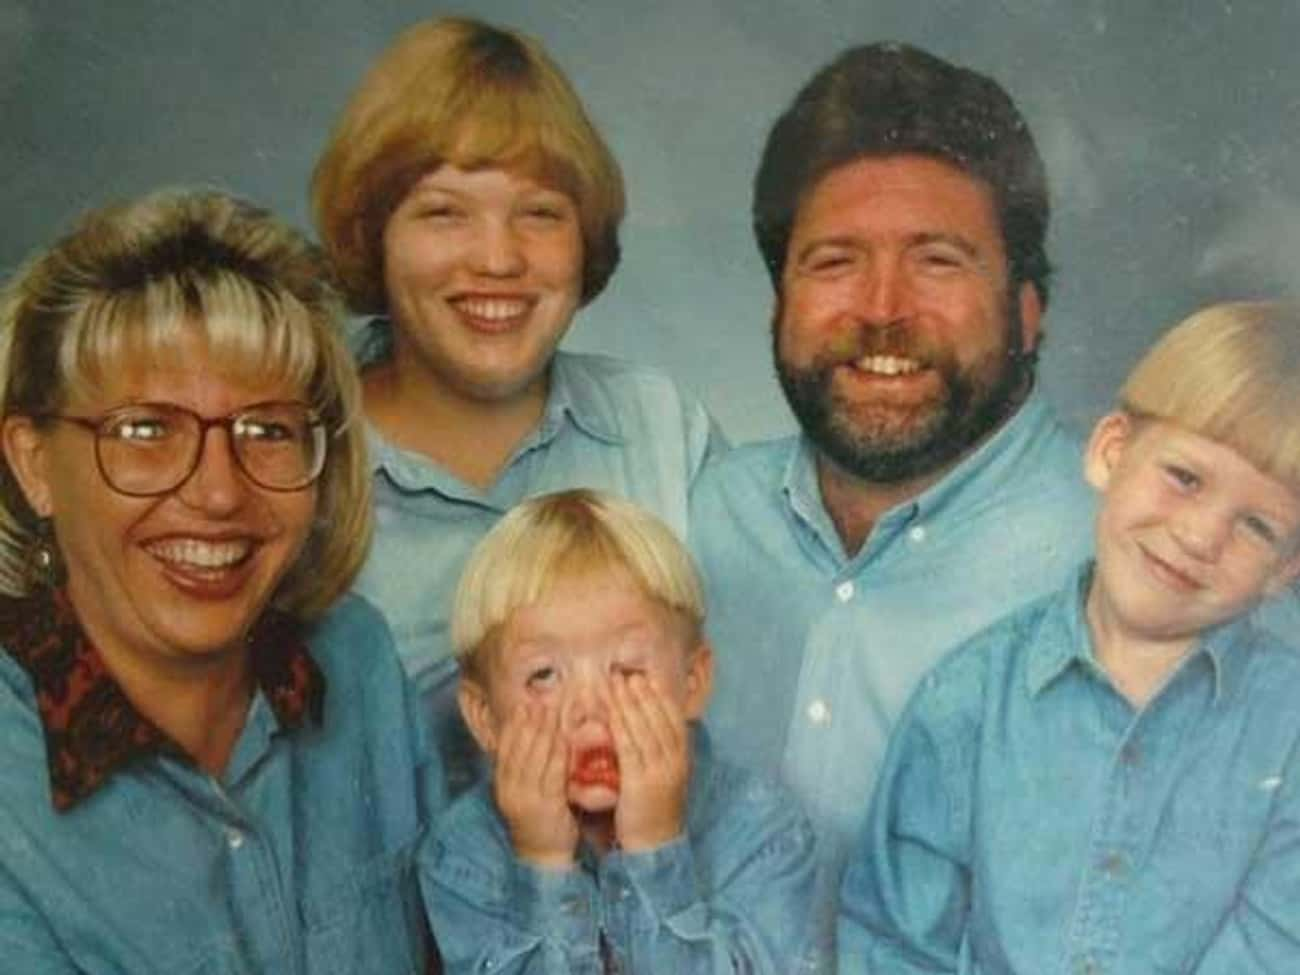 Meet The Denims is listed (or ranked) 1 on the list Denim Glamour Shots That Won the Internet